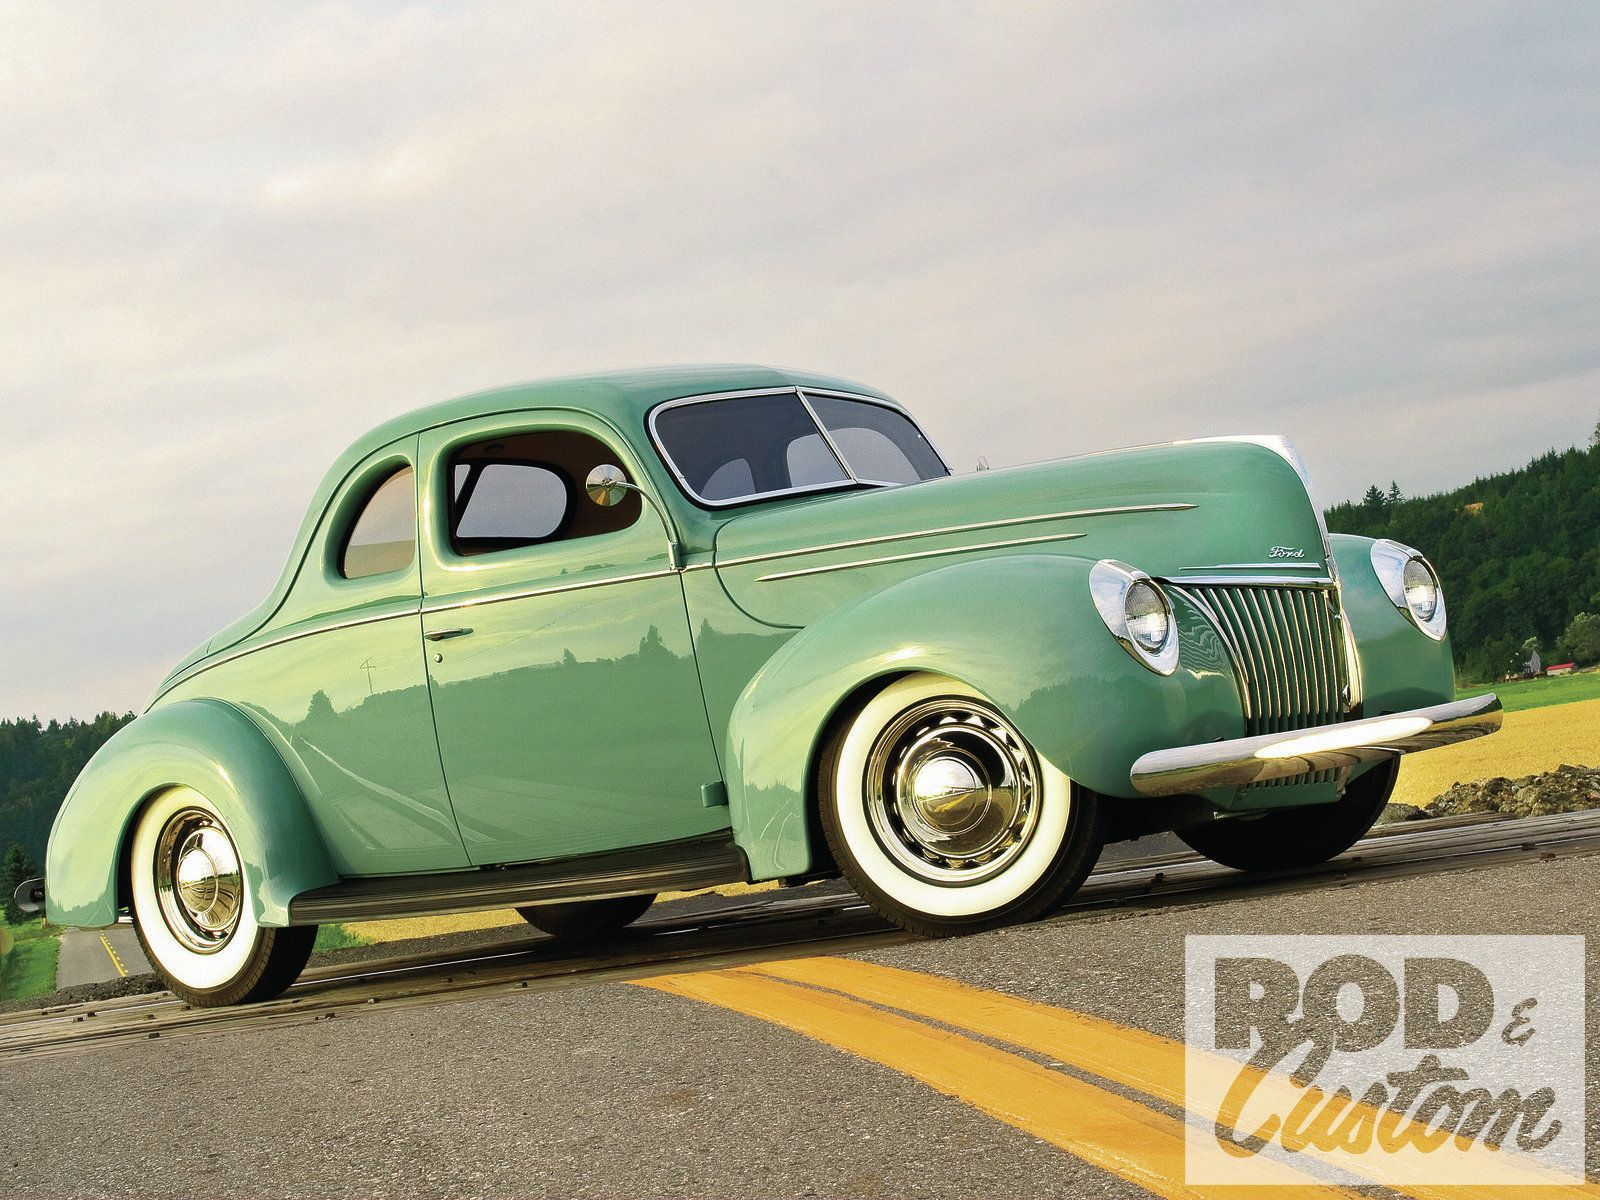 Pin By Buck Caballero On Motors Etc 1939 Ford Coupe Classic Cars Trucks Hot Rods Cars Muscle